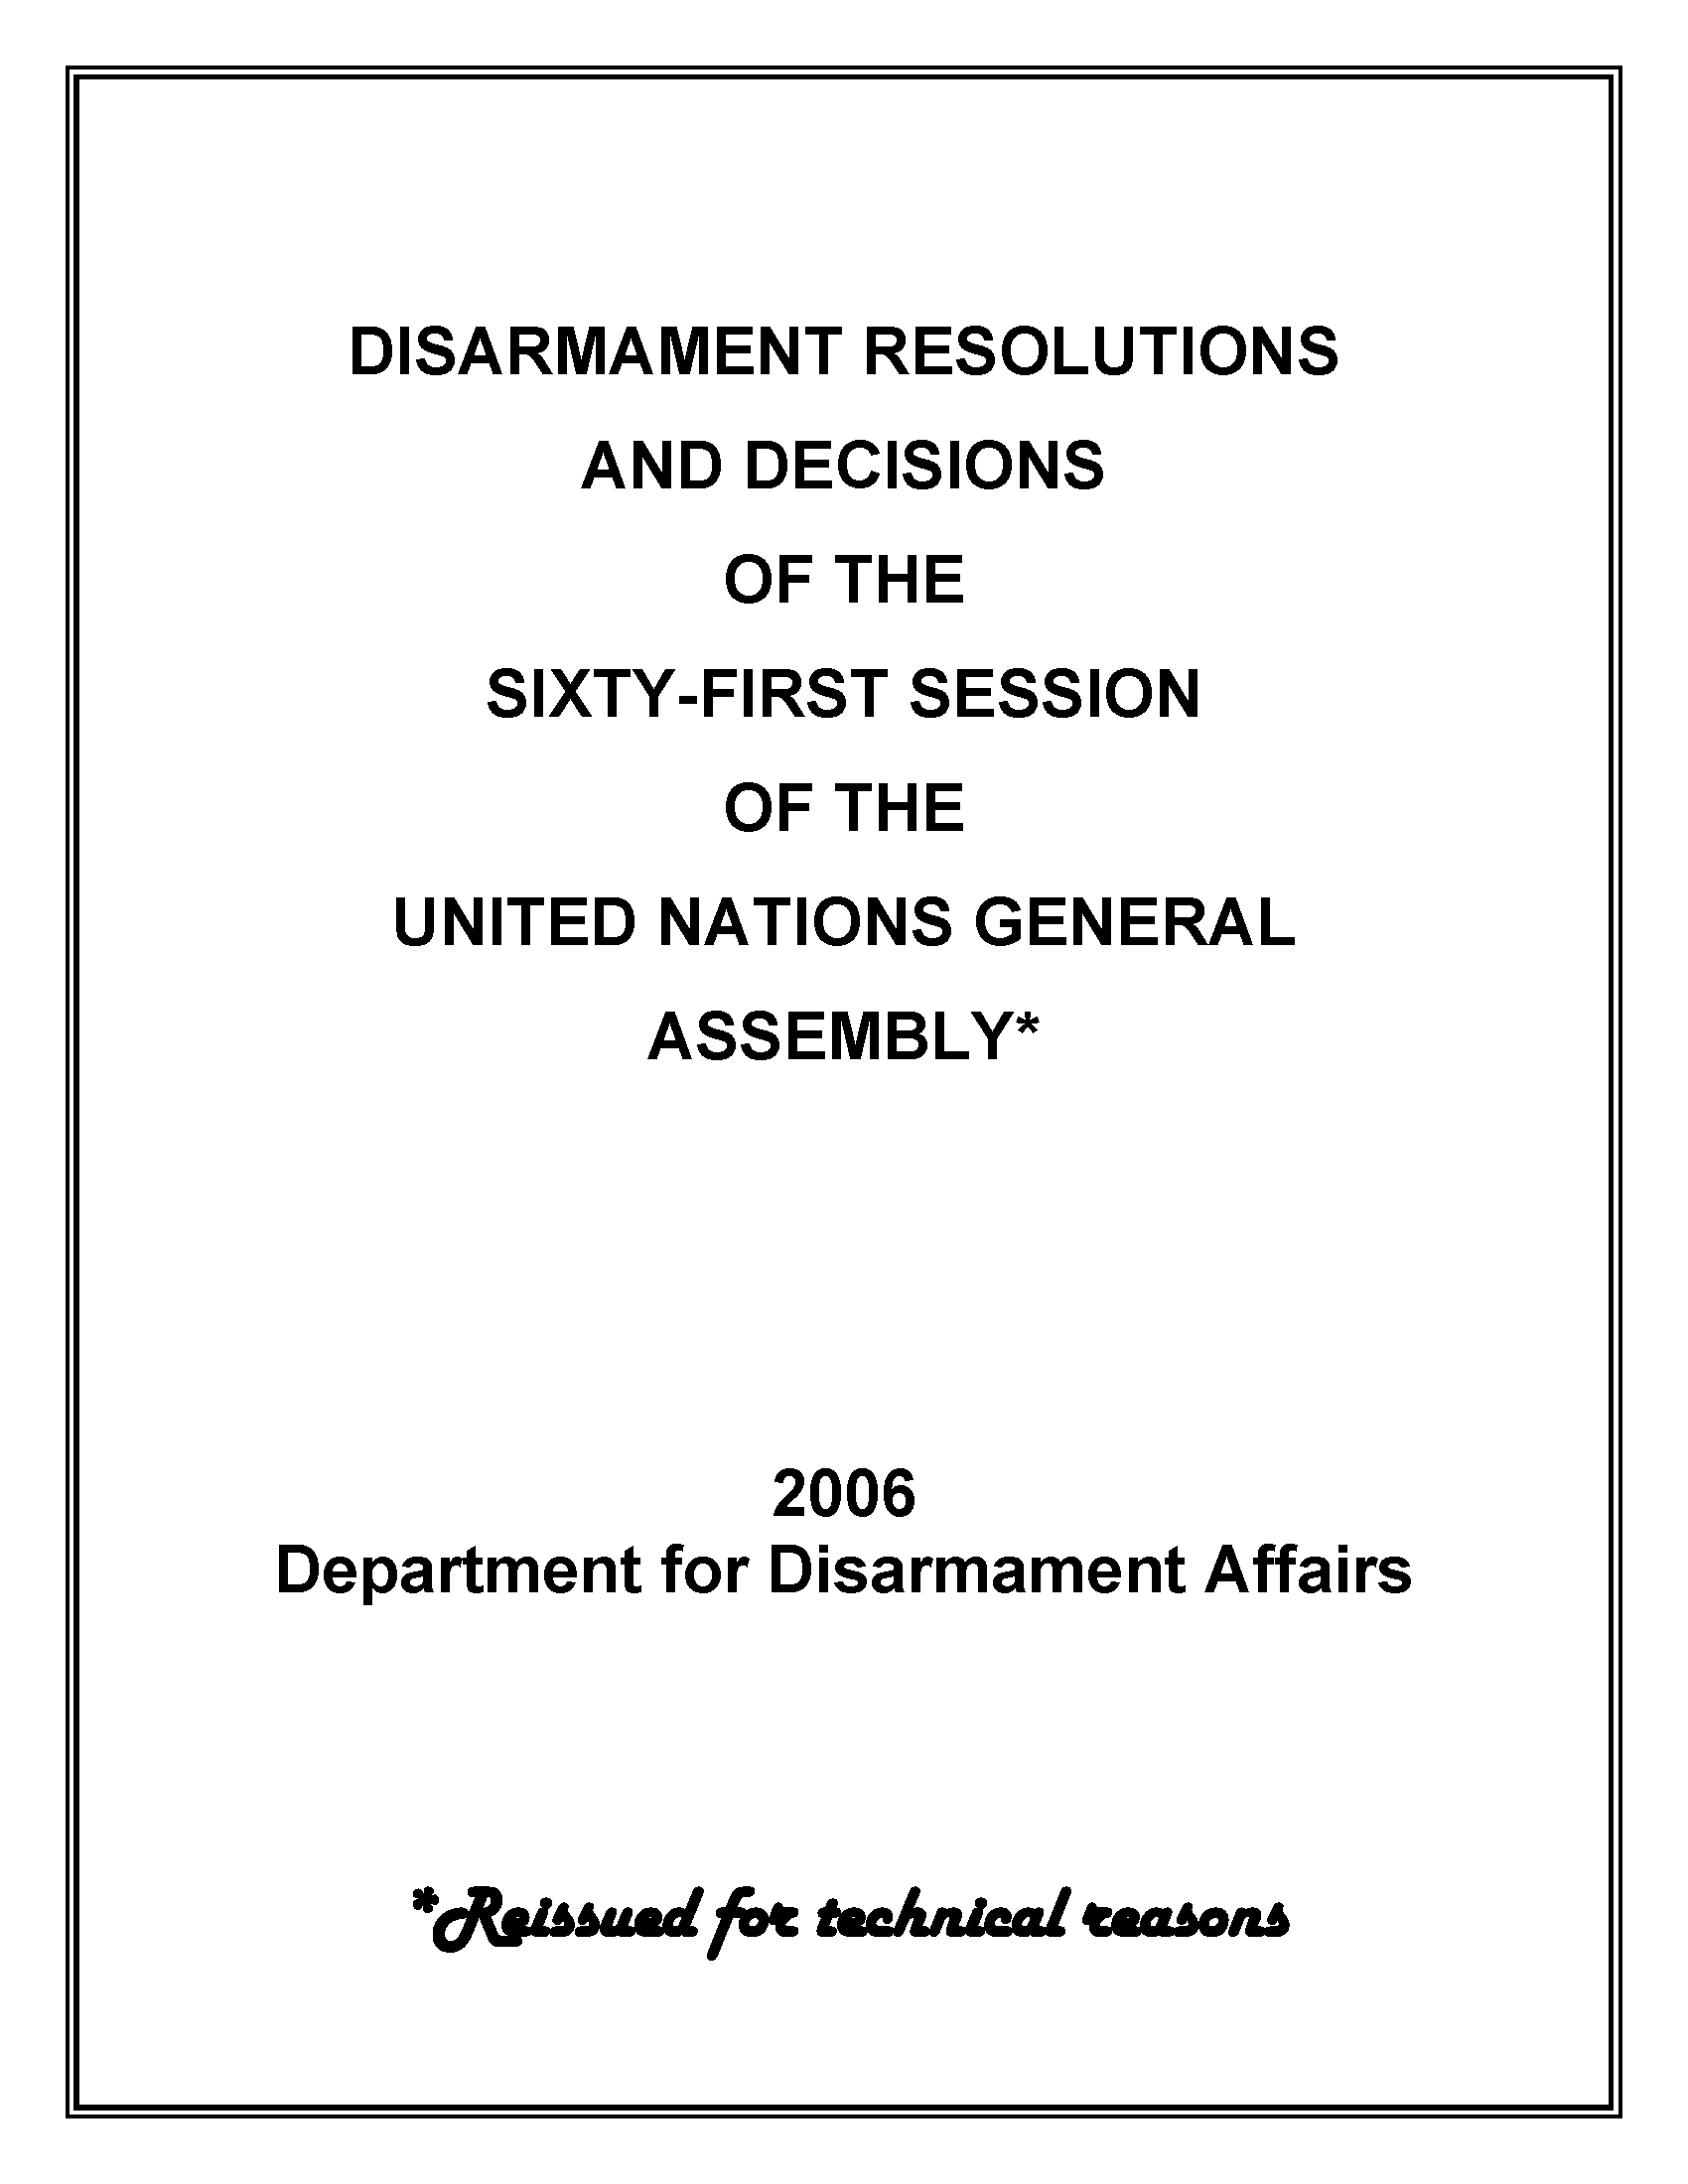 Disarmament Resolutions and Decisions of the Sixty-first Session of the United Nations General Assembly, 2006